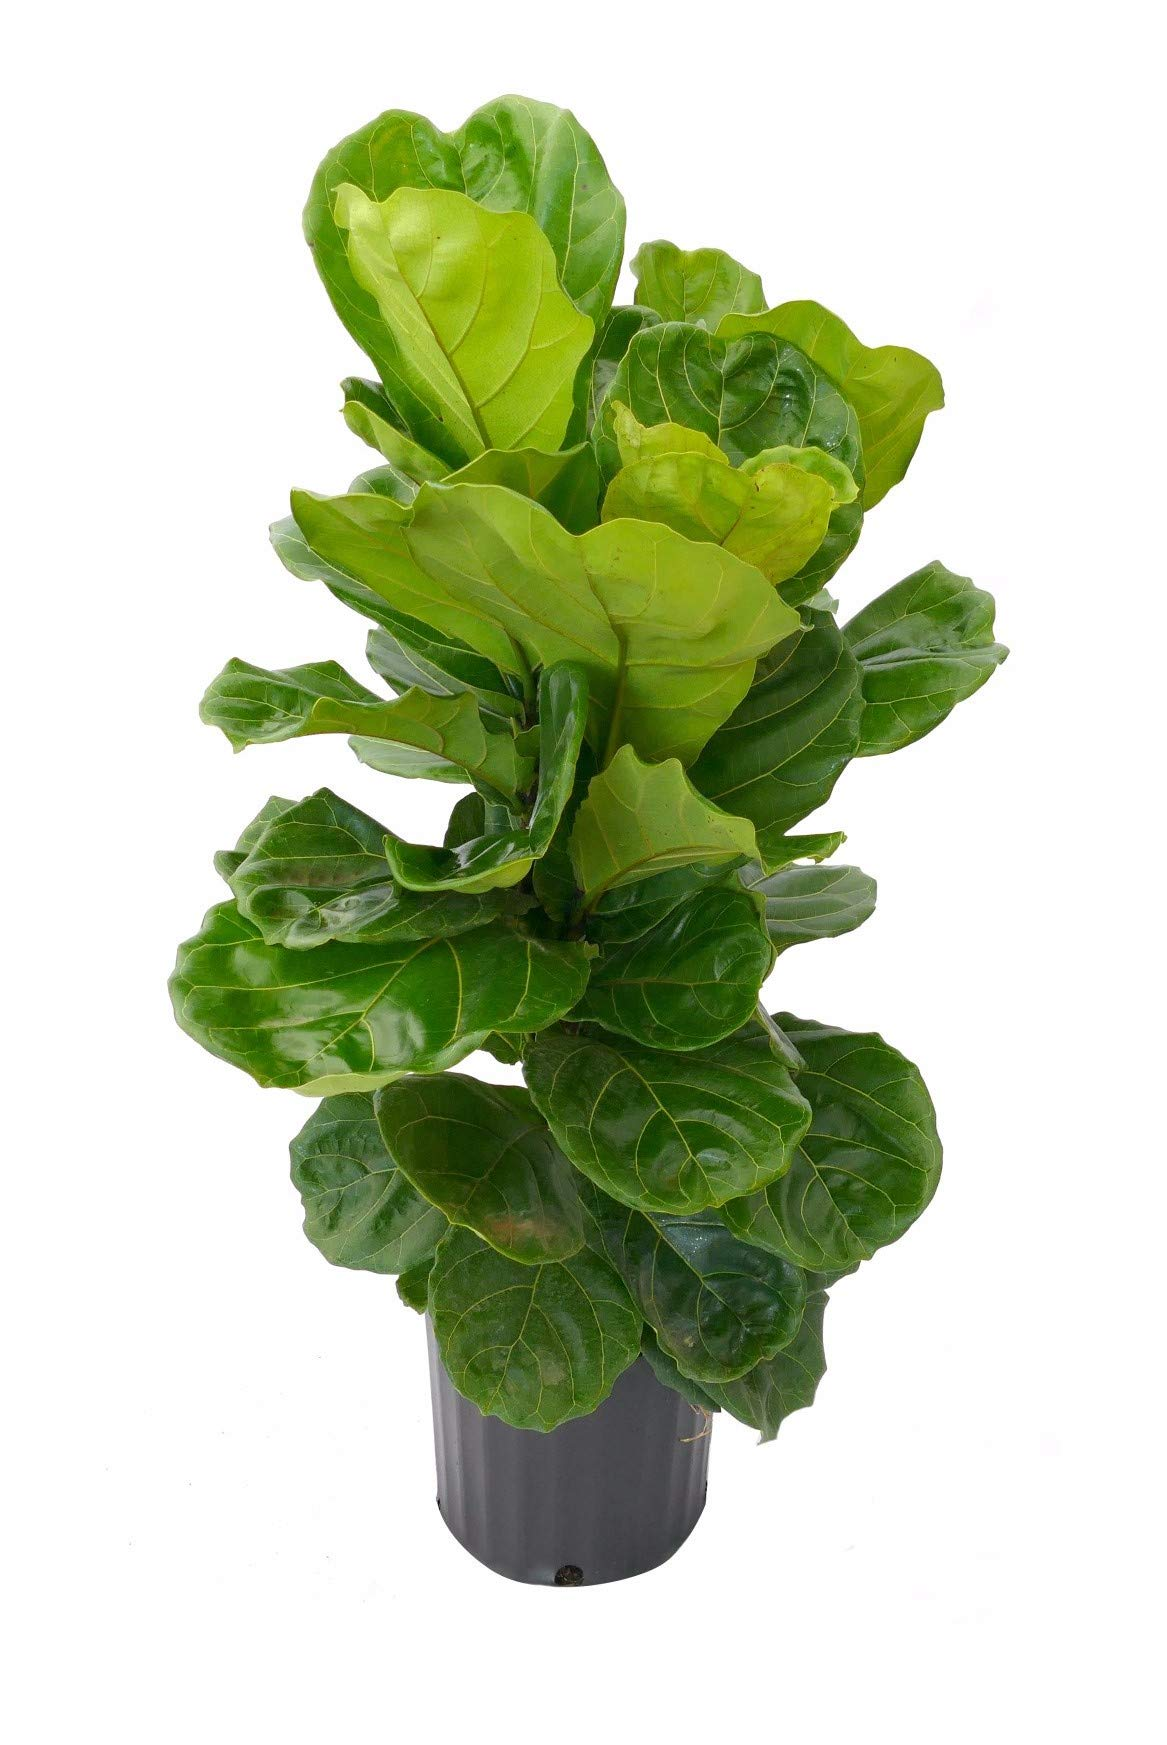 Acosta Farms - Fiddle Leaf Fig (Ficus Lyrata) - Live Indoor and Outdoor House Plant - 24''-36'' Tall in 9.25'' Pot - Planted and Grown by us, Handled with Extreme Care by Acosta Farms (Image #1)